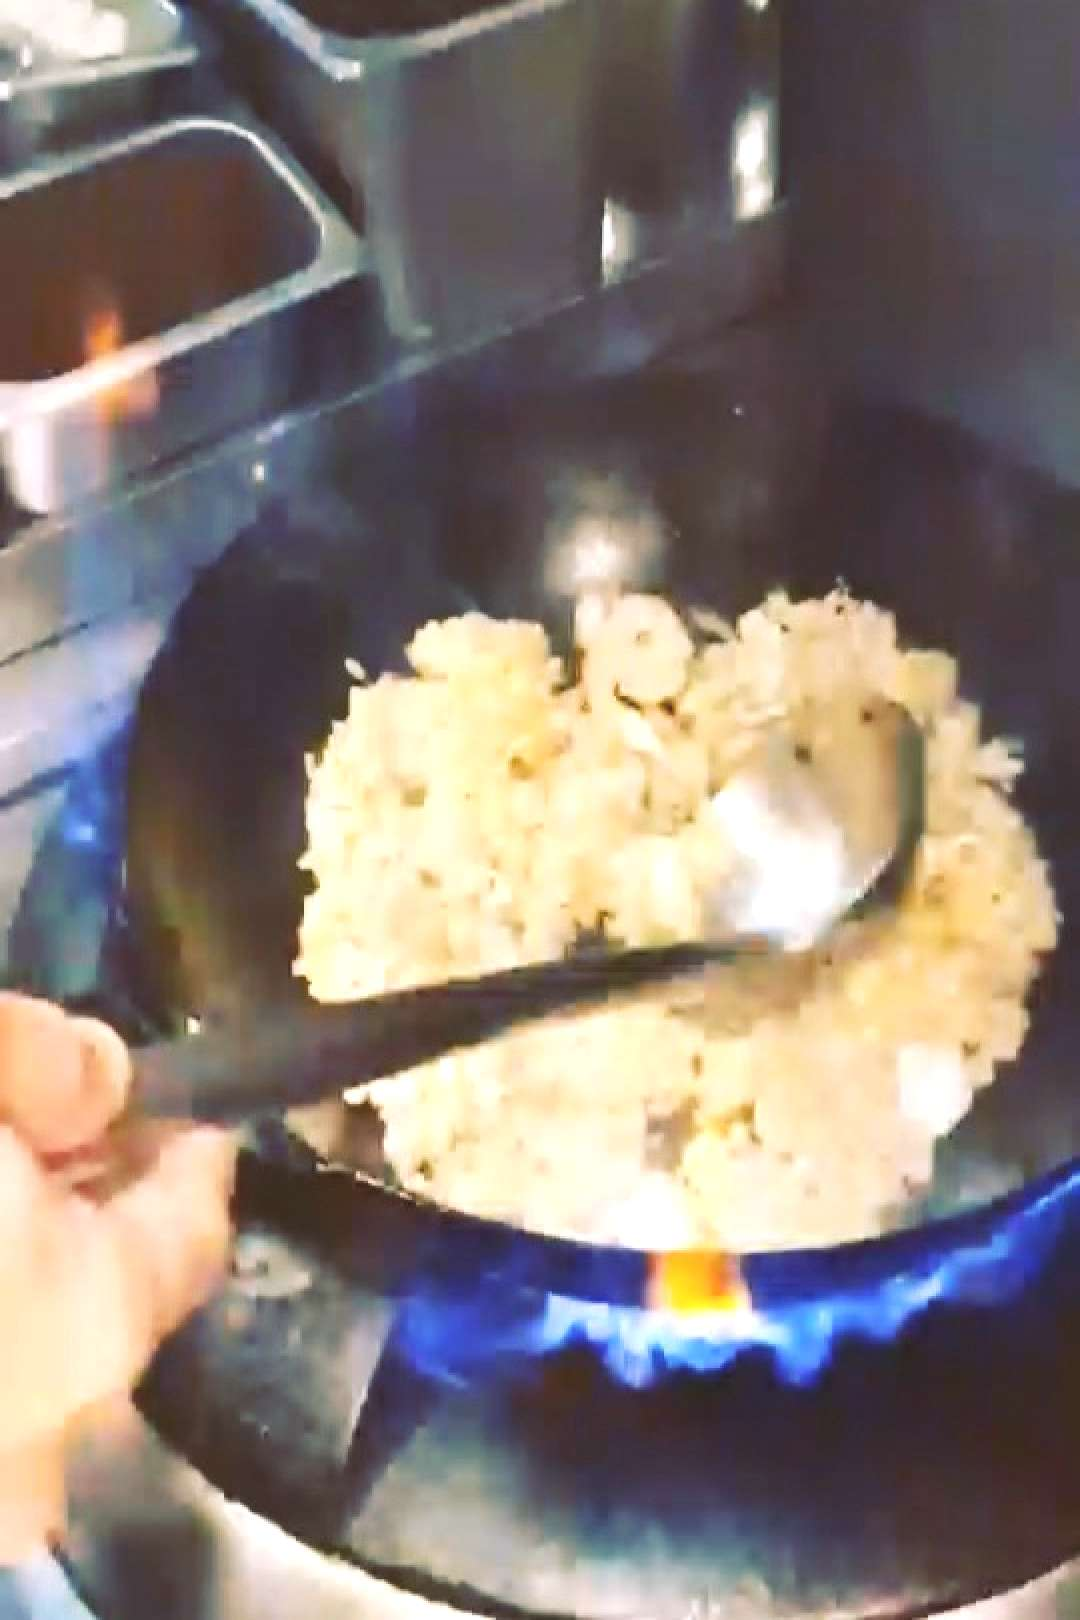 fried rice#charcoal#smoke#oyster#headed#sick#flavor#noodle#yummy#